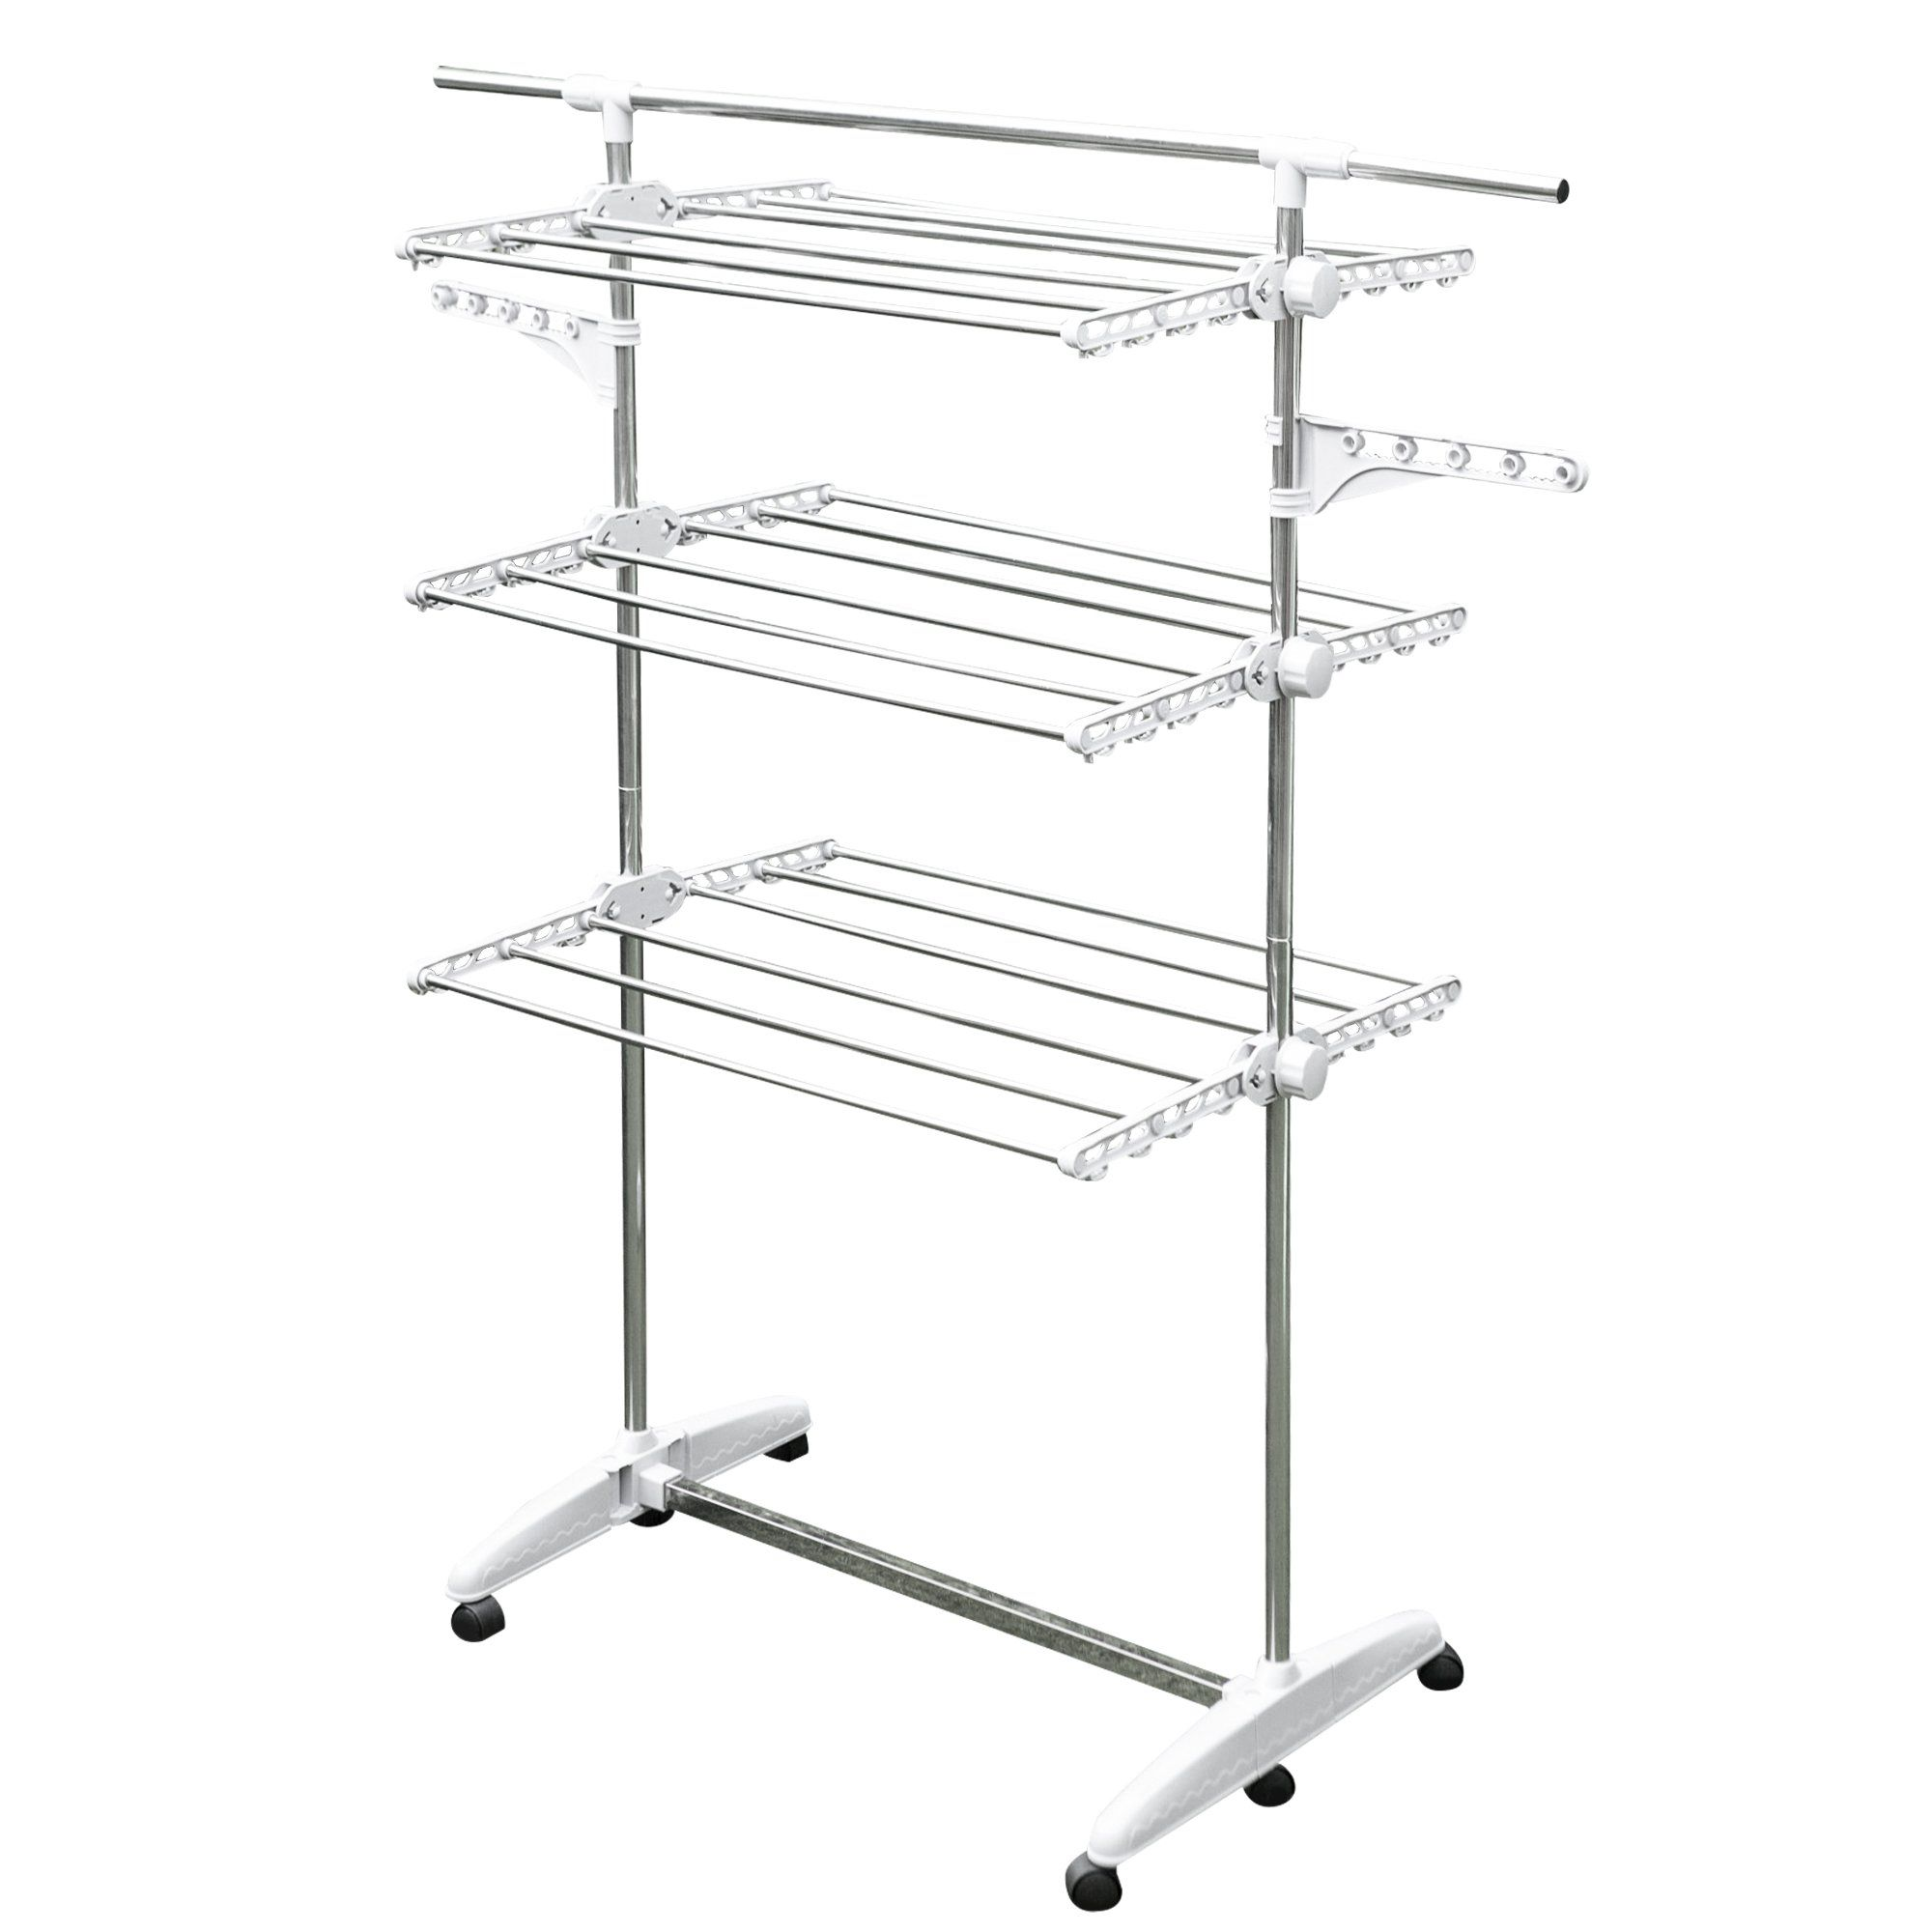 Kp Solution Byc Foldable 3 Tier Laundry Clothes Drying Rack